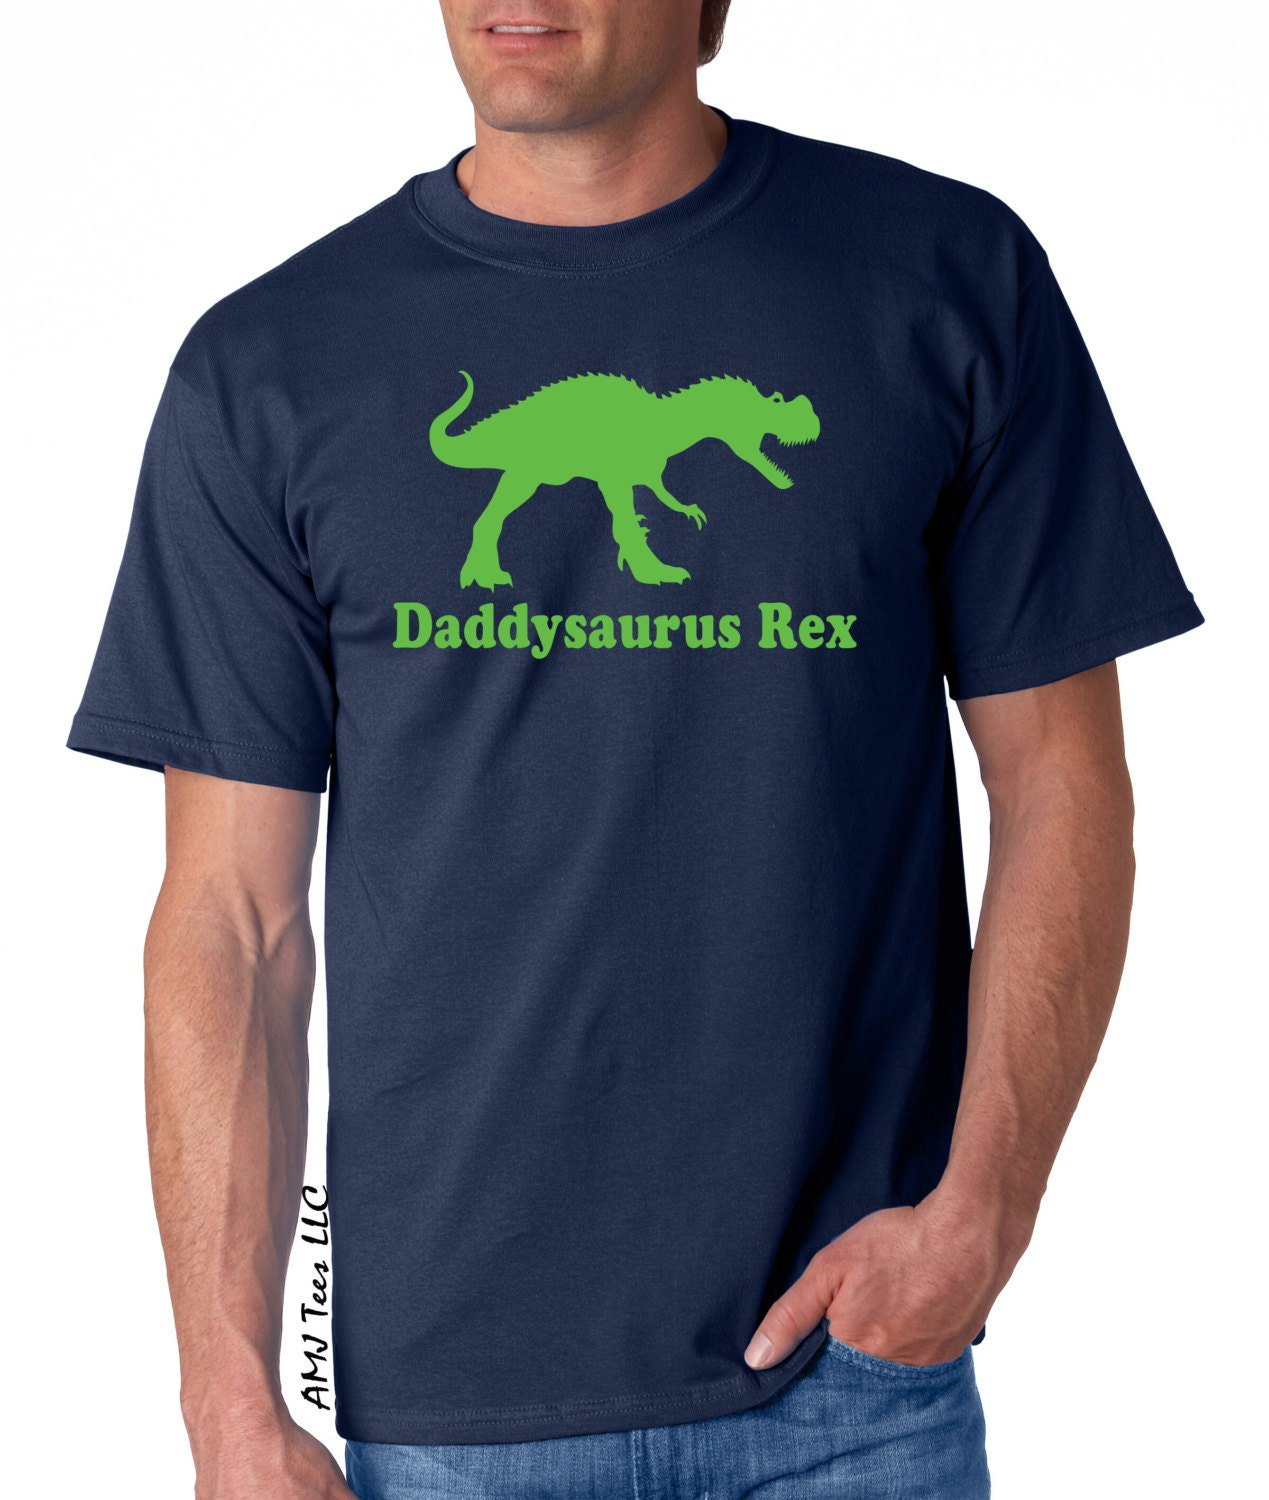 Daddysaurus shirt, mens dinosaur shirt, Fathers day gift, trex shirt, gifts for dad, dinosaur birthday, fathers day, new daddy gift